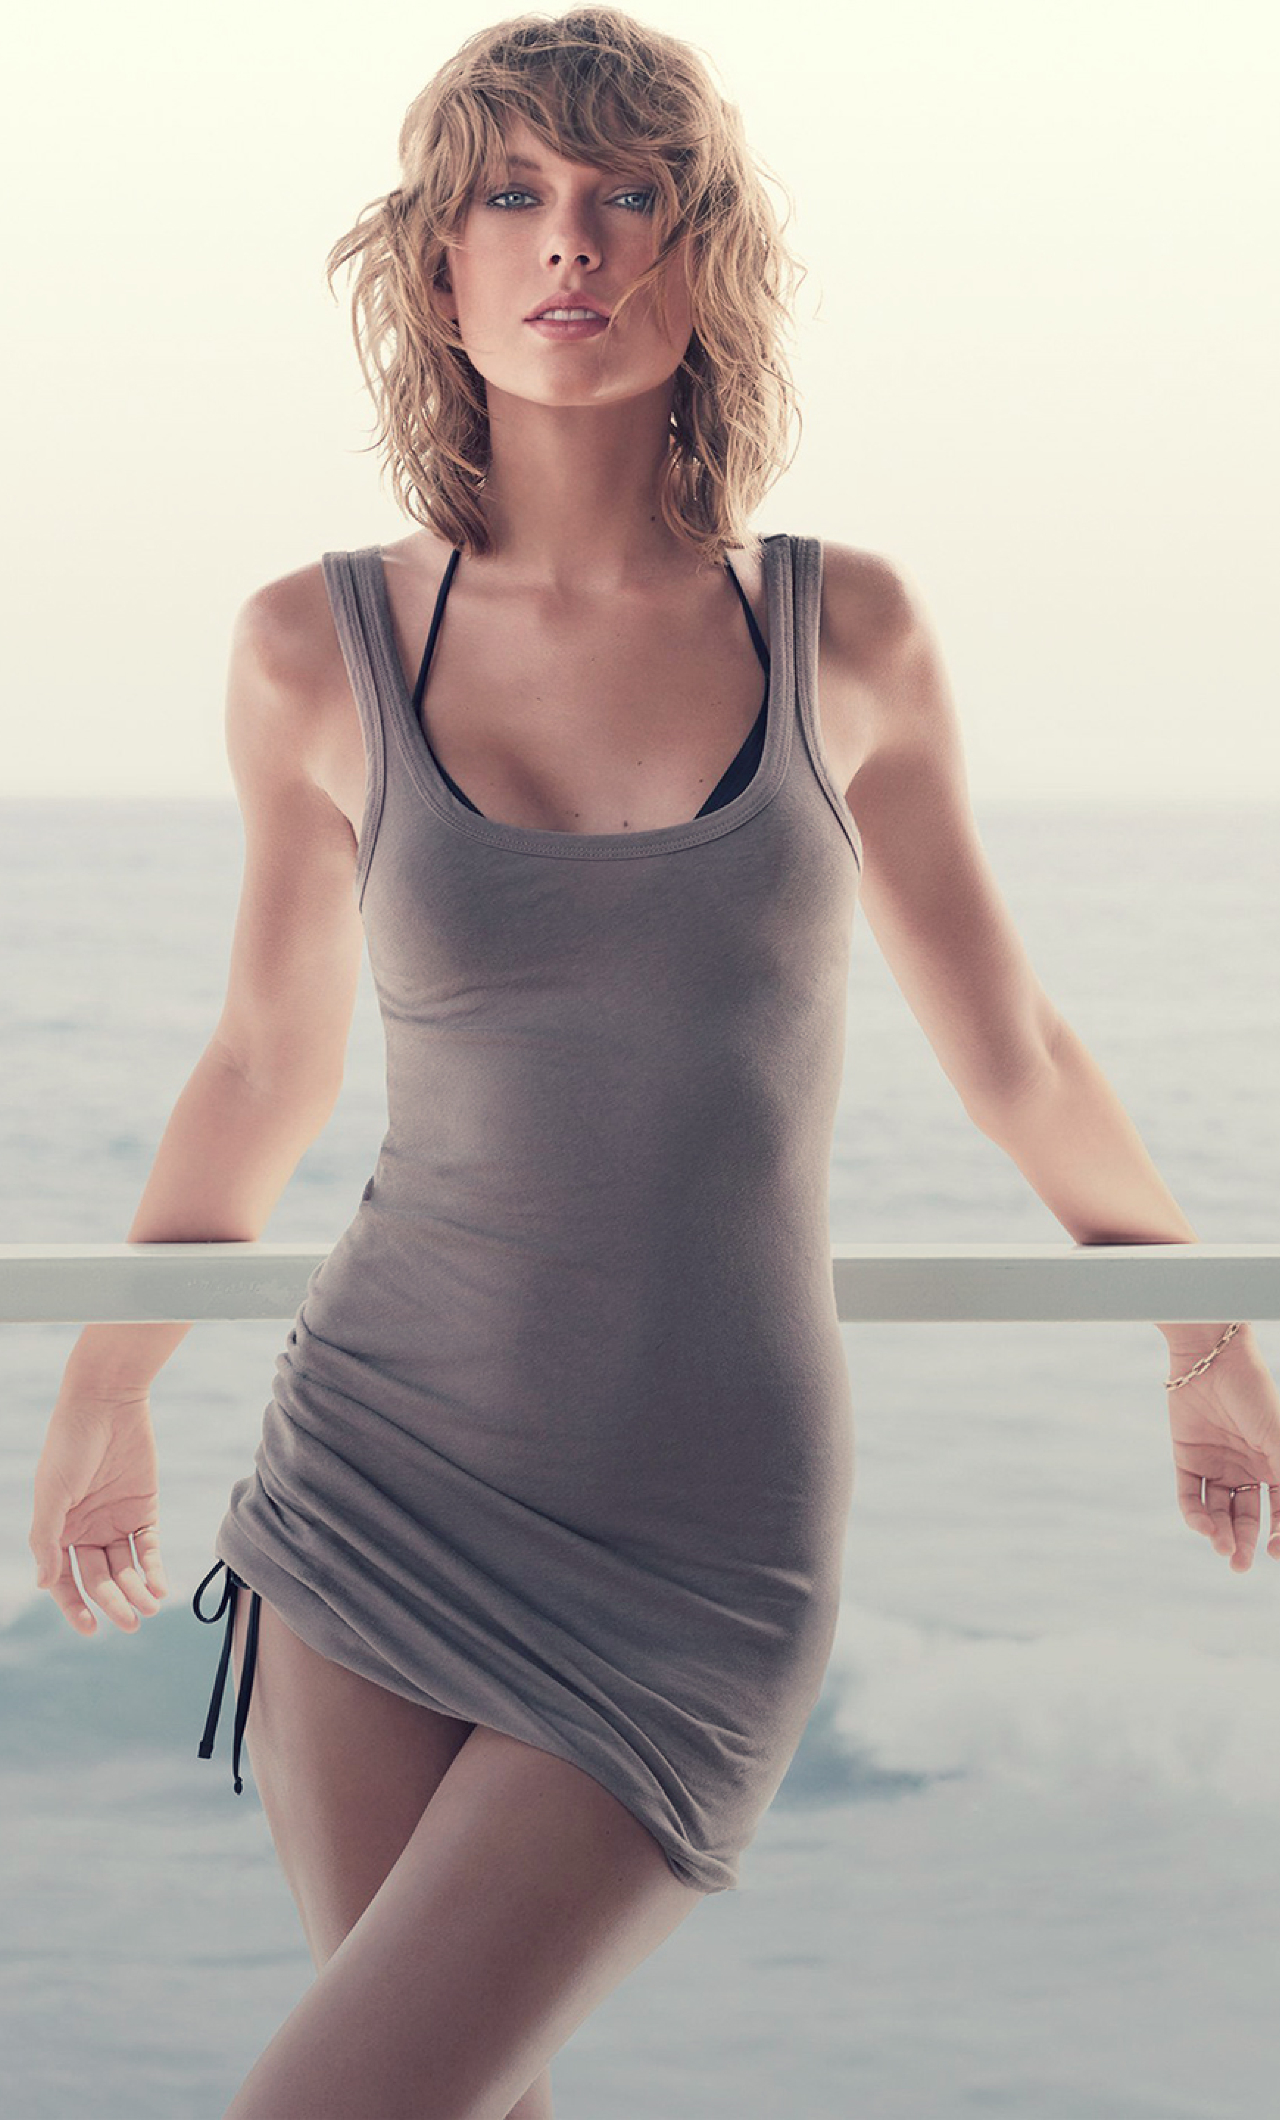 taylor swift gq magazine photoshoot, full hd 2k wallpaper